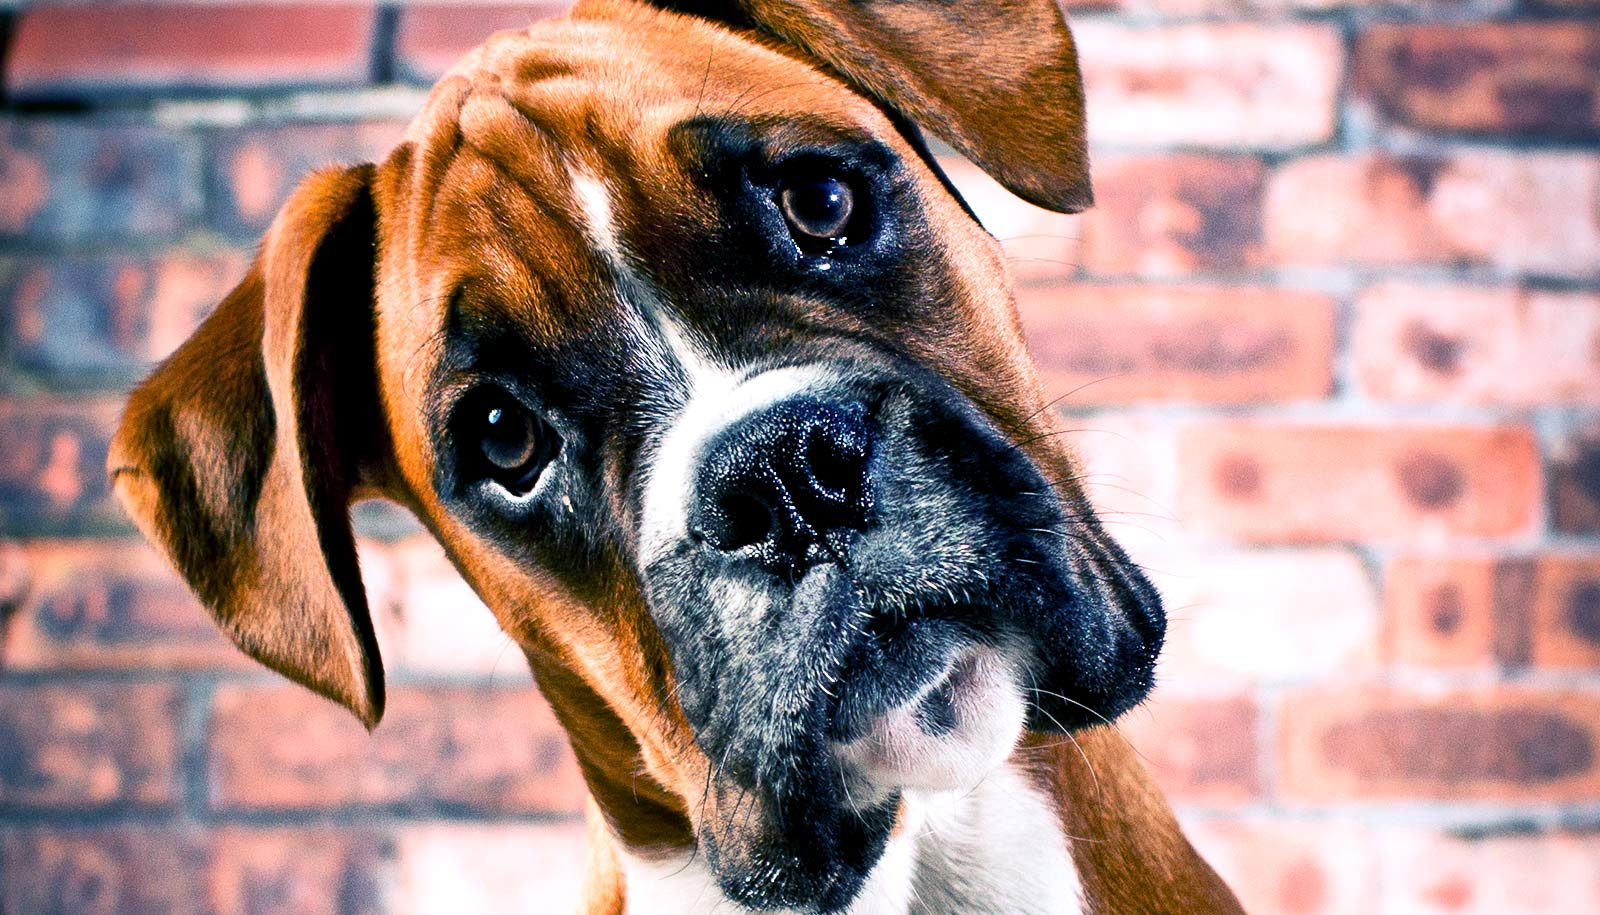 Do dogs understand the words we say to them?